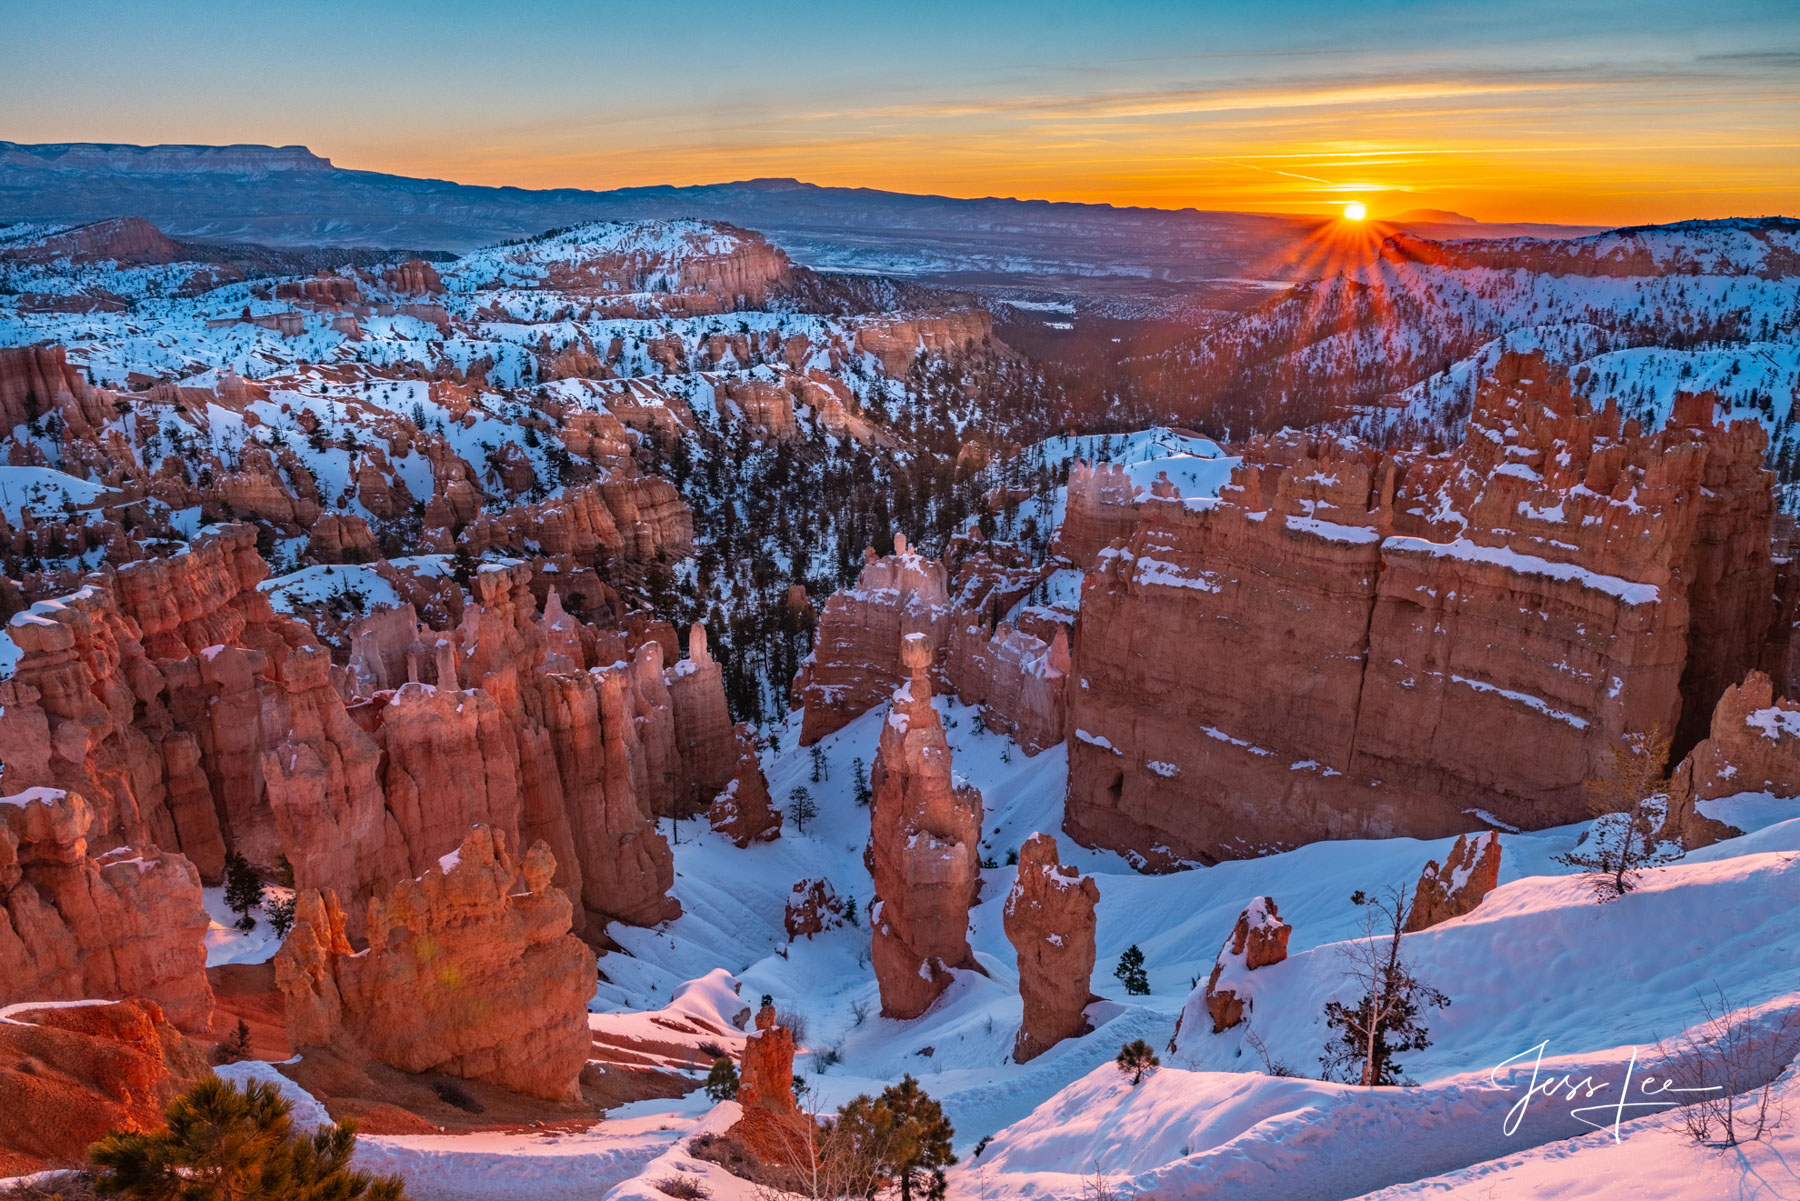 Limited Edition of 50 Exclusive high-resolution Museum Quality Fine Art Prints of Sunrise, Red Rocks Country, Bryce Canyon. Photos...